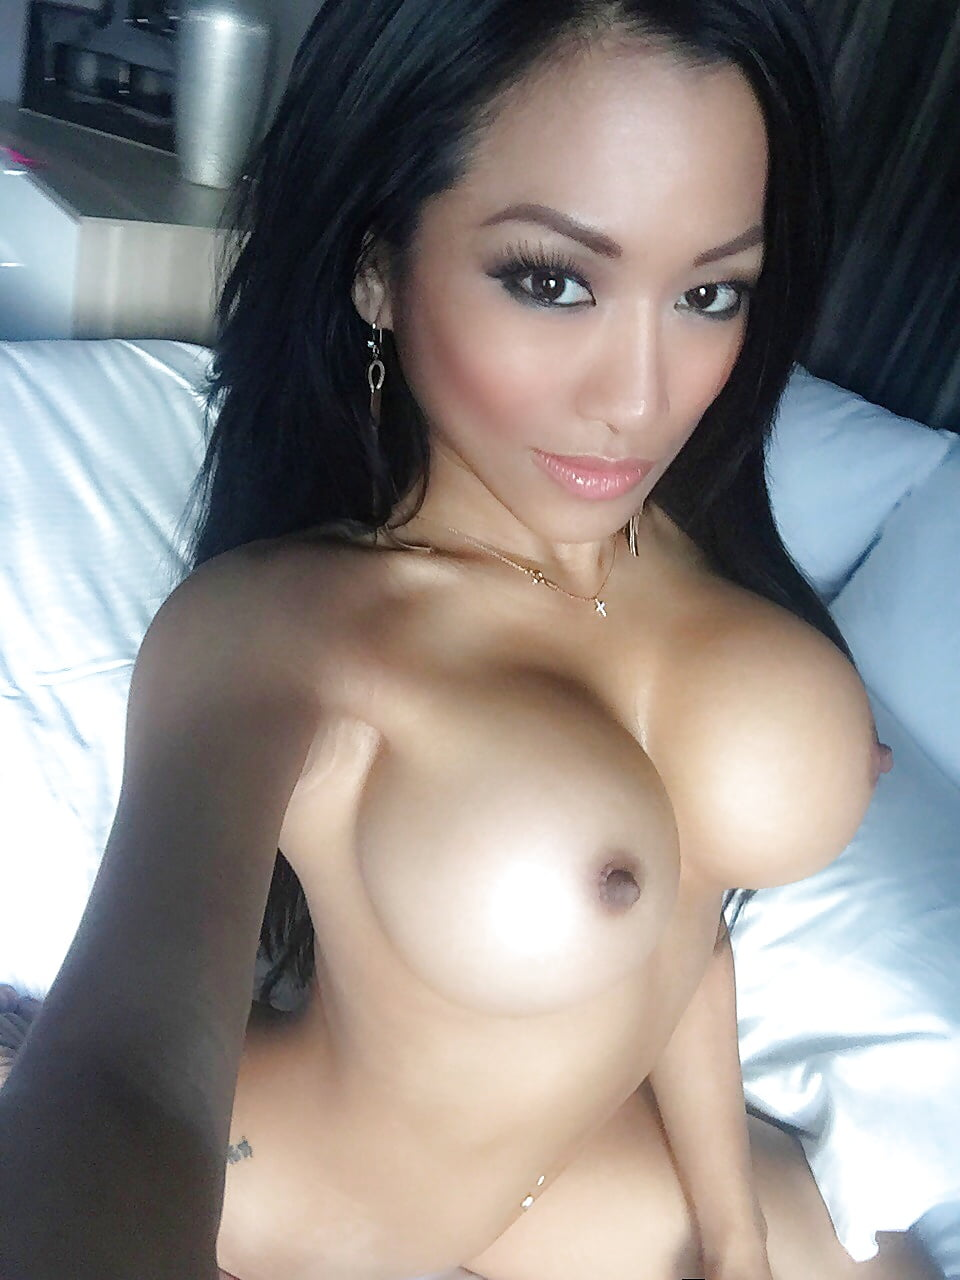 Barbie cheung nude — pic 1